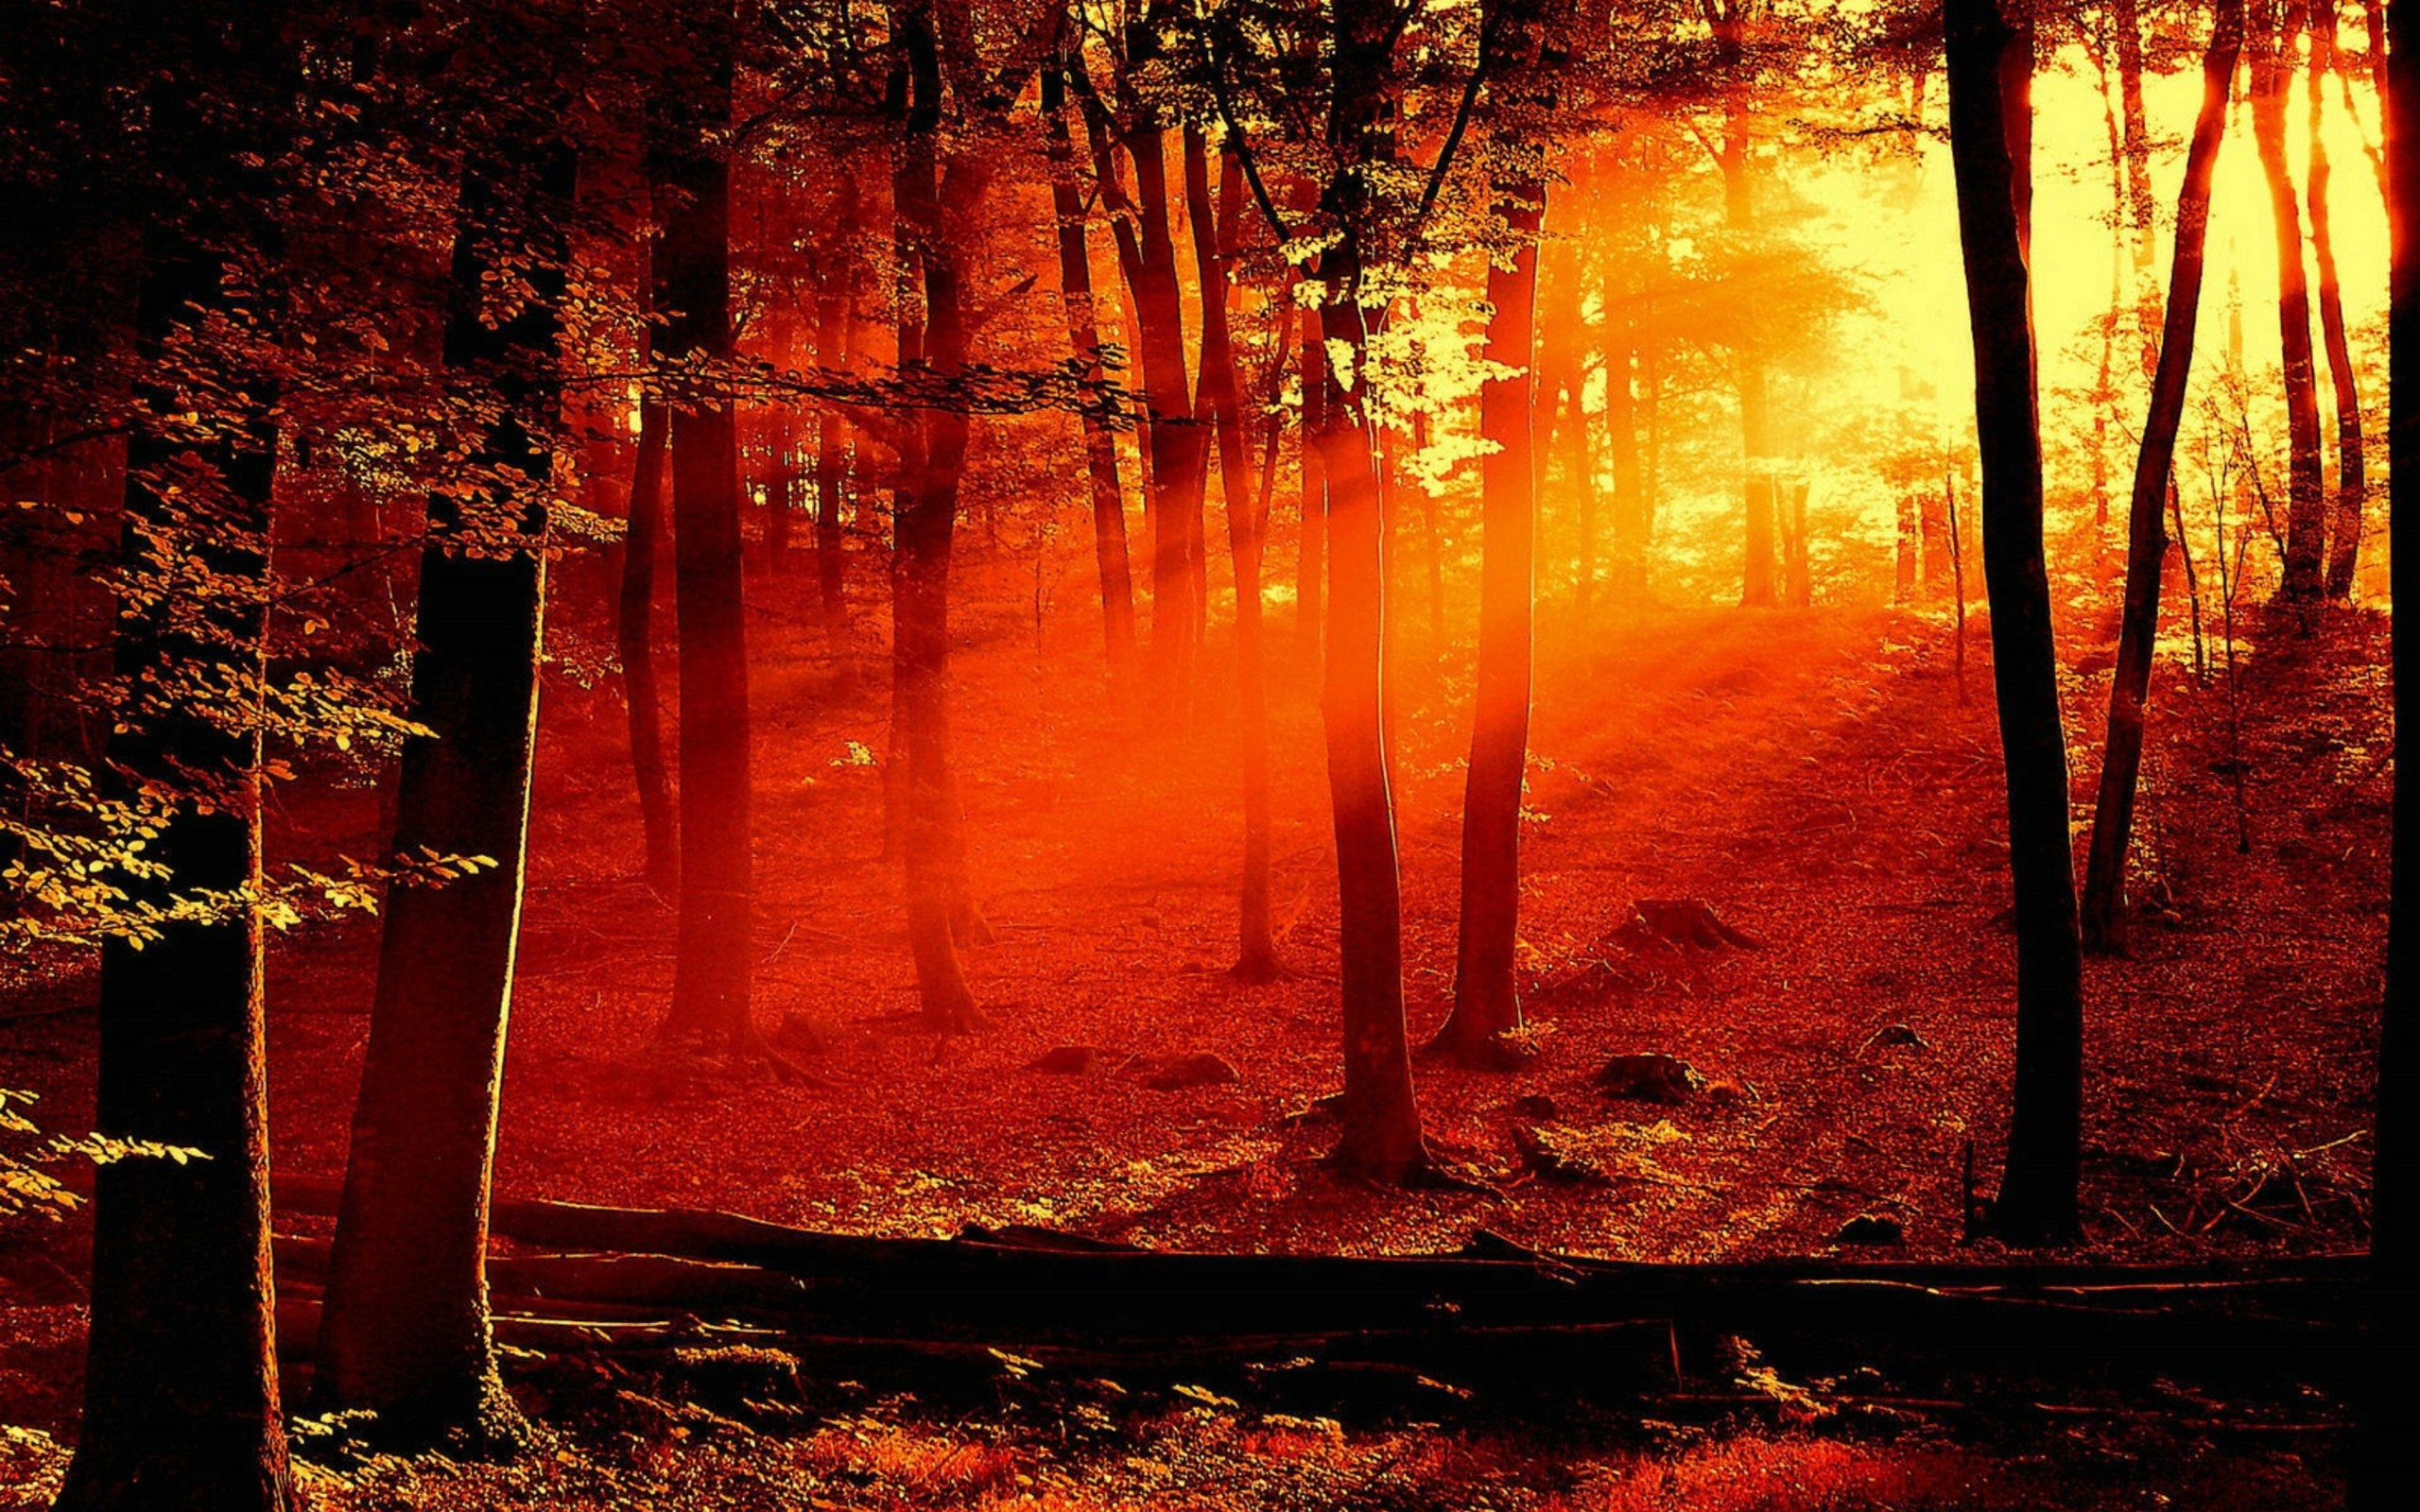 Forest Fire Wallpapers Forest Fire Myspace Backgrounds Forest Fire 2560x1600